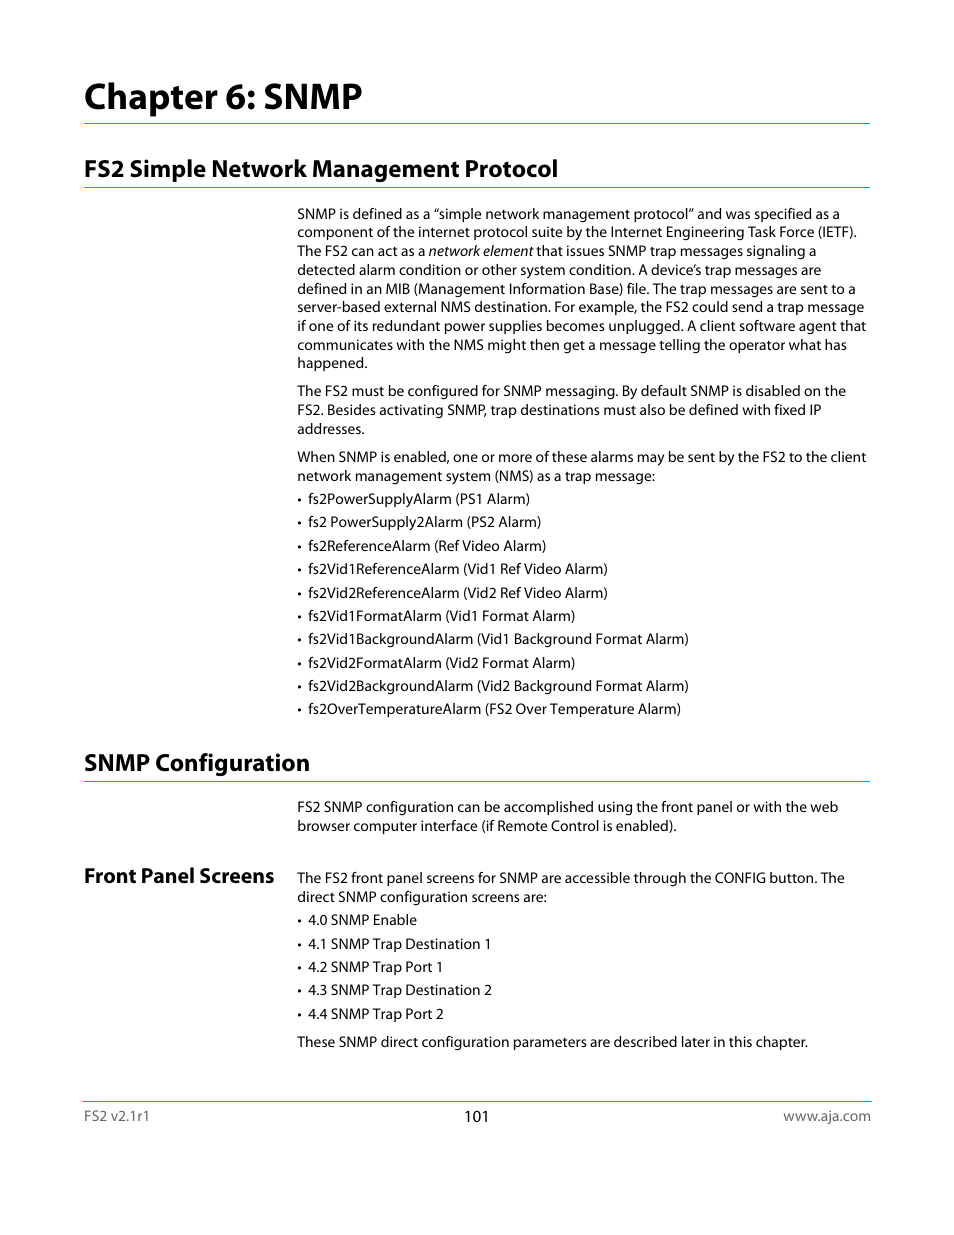 Chapter 6: snmp, Fs2 simple network management protocol, Snmp